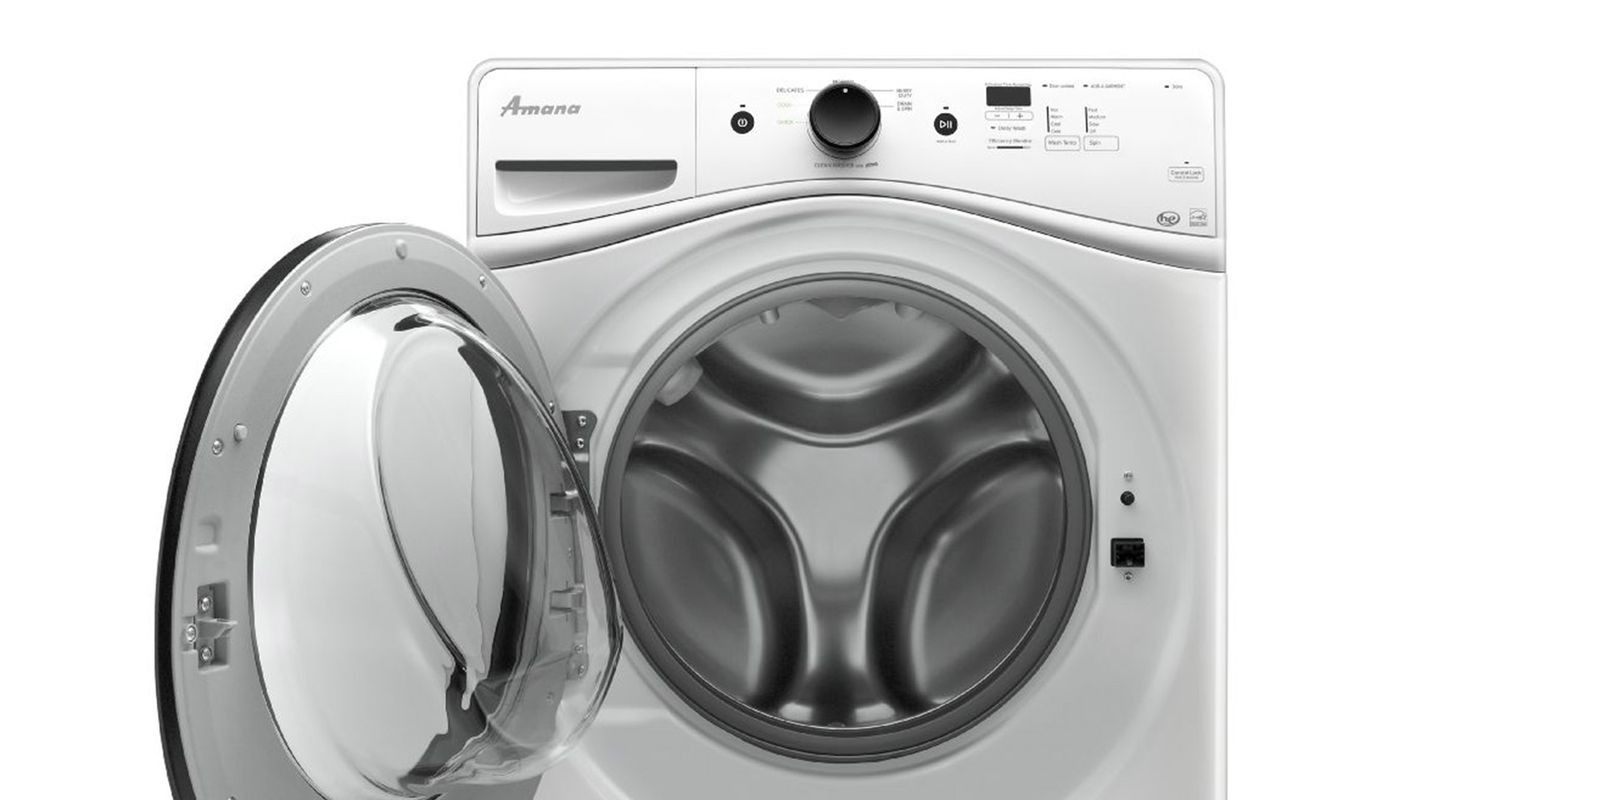 energy star qualified front load washer nfw5700bw review